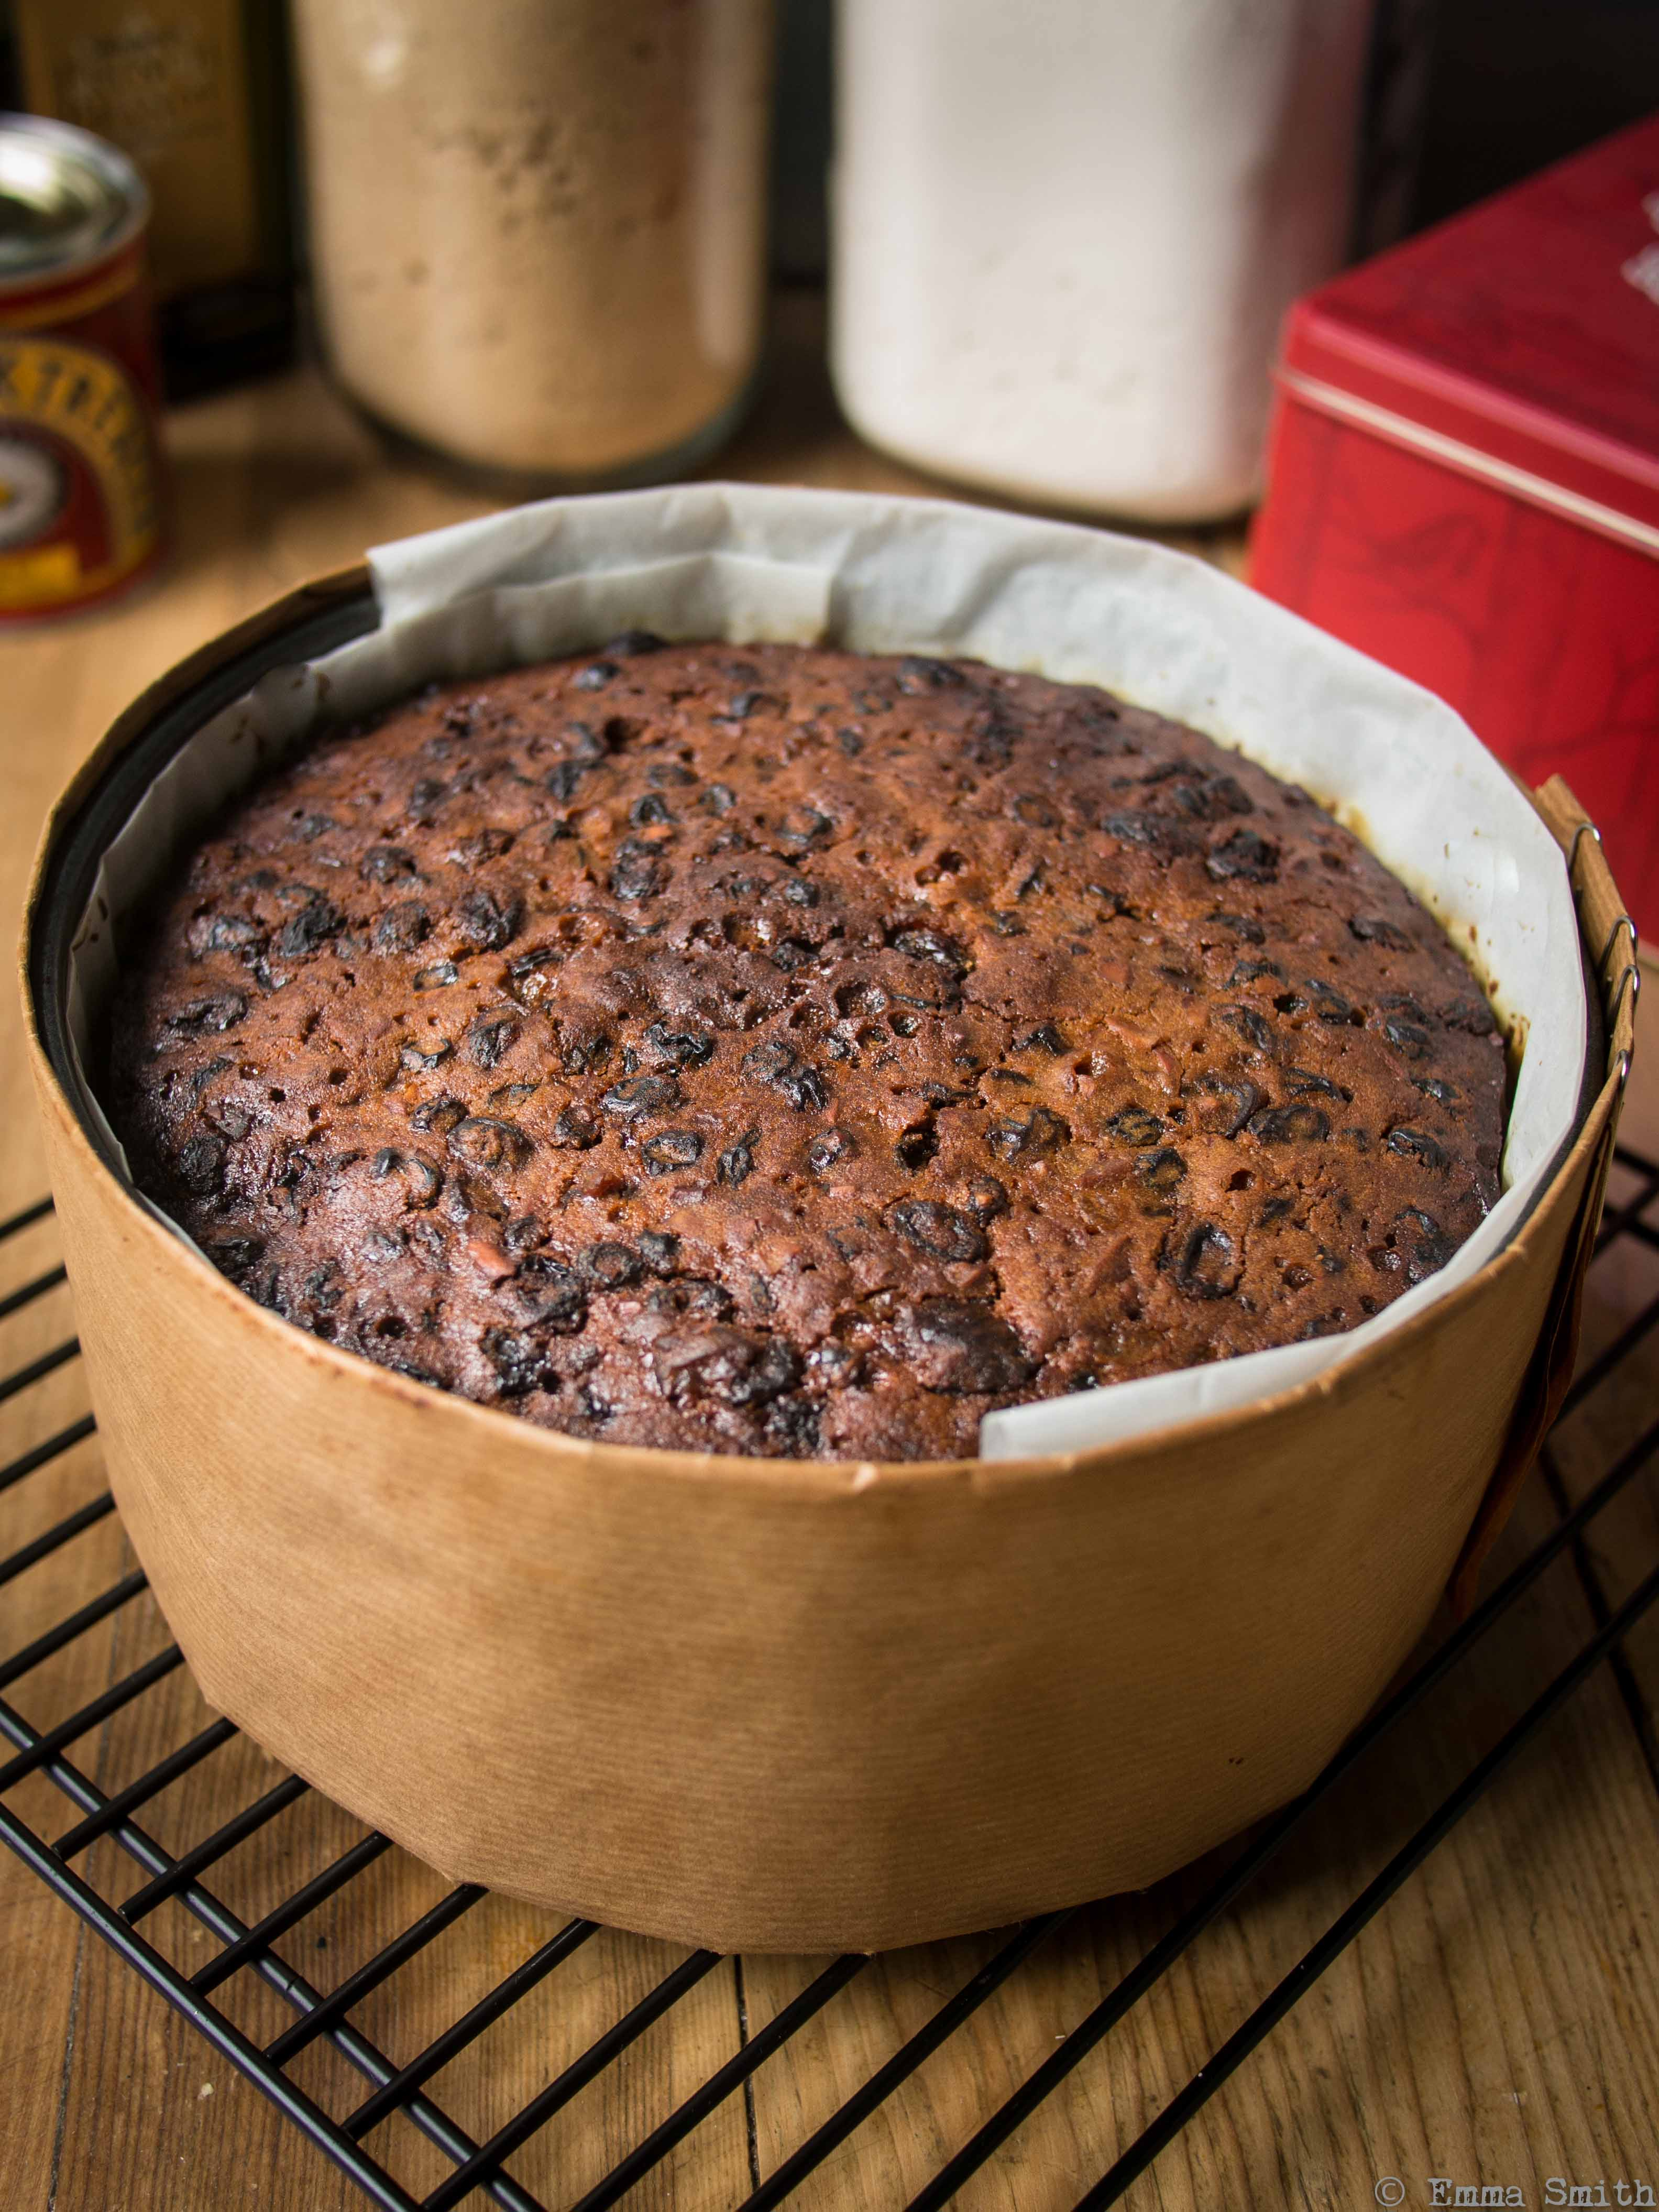 Whisky Or Brandy In Christmas Cake